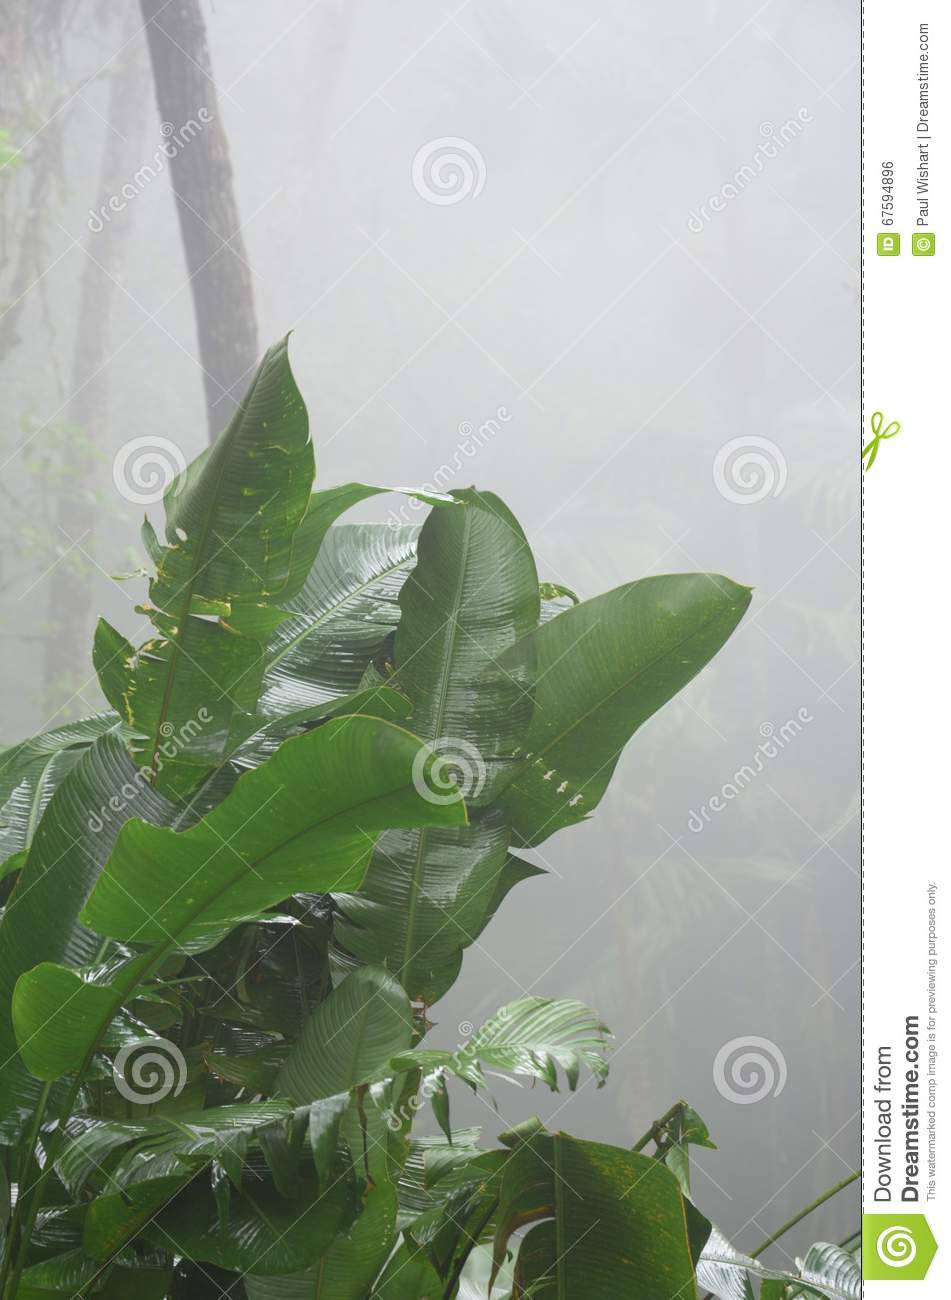 Green leafed plant in Jungle